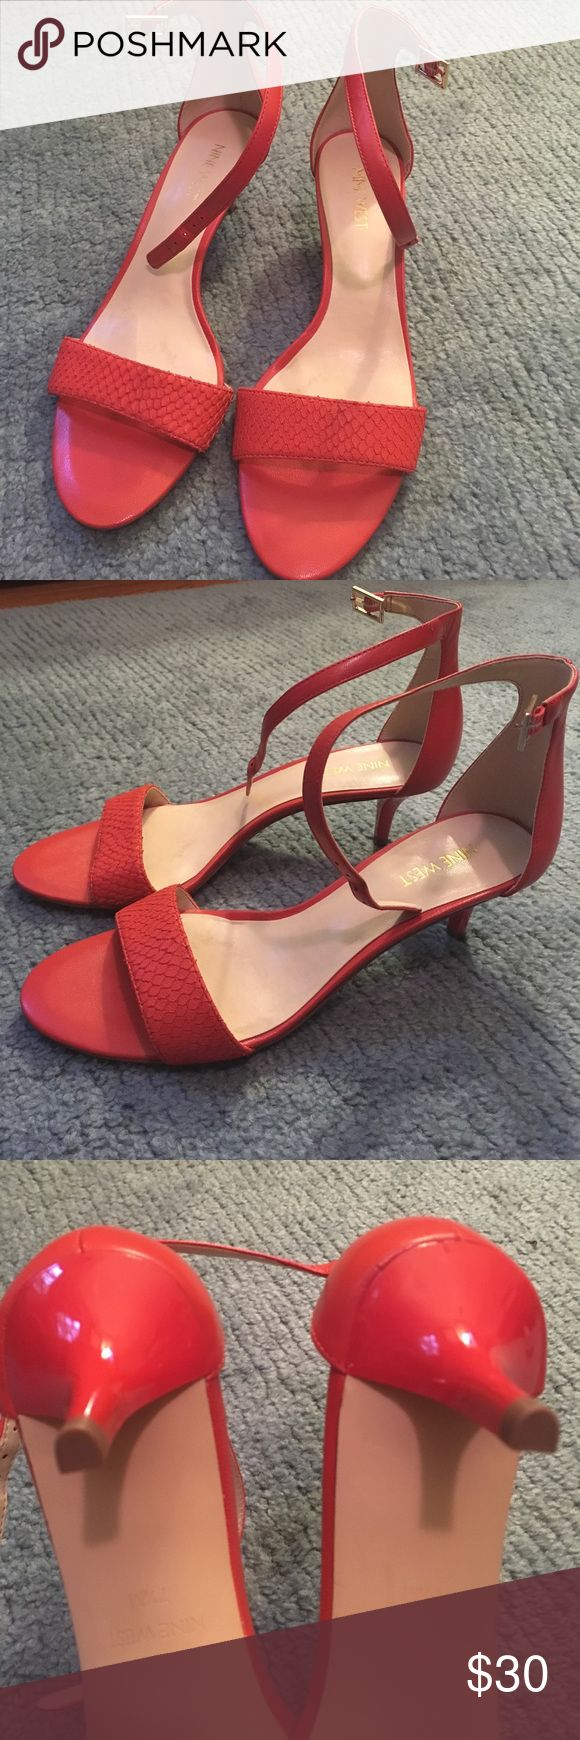 "Nine West coral orange kitten heels Nine West orange strappy sandal. Heel is 1 3/4"". Super cute and comfortable! Ankle strap is adjustable with gold buckle. Upper of sandal has a subtle snake skin pattern as shown in photos. EXCELLENT condition as these have never been worn! Great way to polish off your look with a pop of color, whether you pair these with a work dress or casual summer skirt Nine West Shoes Sandals"